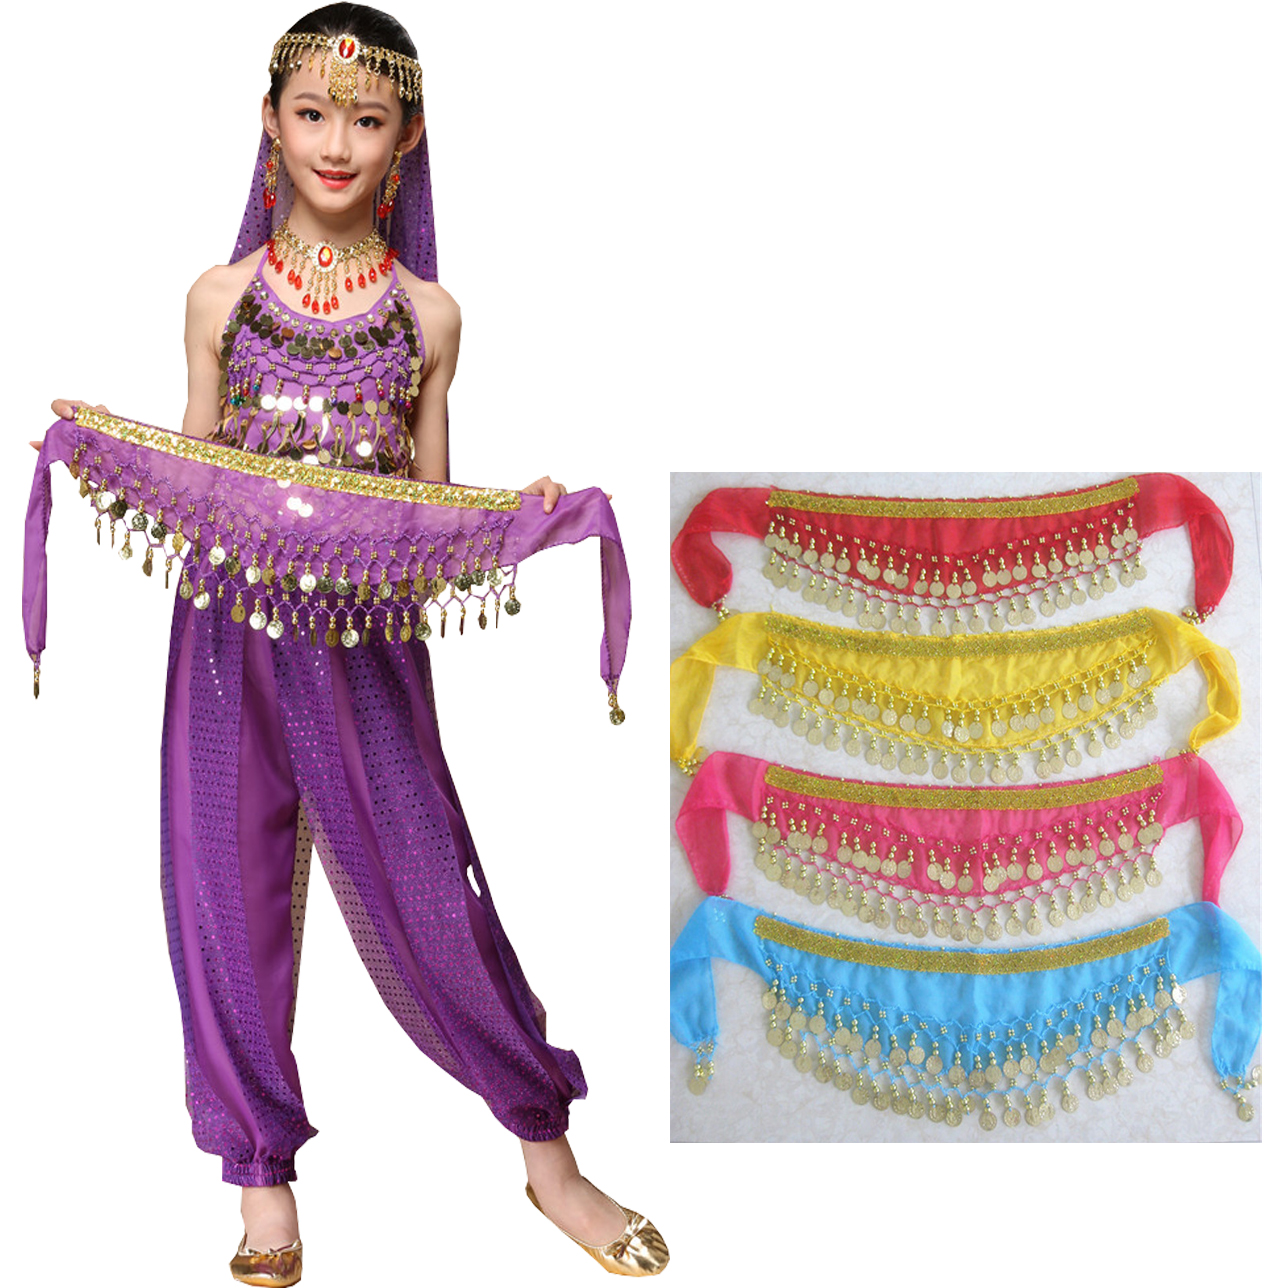 Hot sale Kid Size Sequin <strong>Tribal</strong> Sash Skirt w/Coin Belt For <strong>Belly</strong> <strong>Dance</strong>